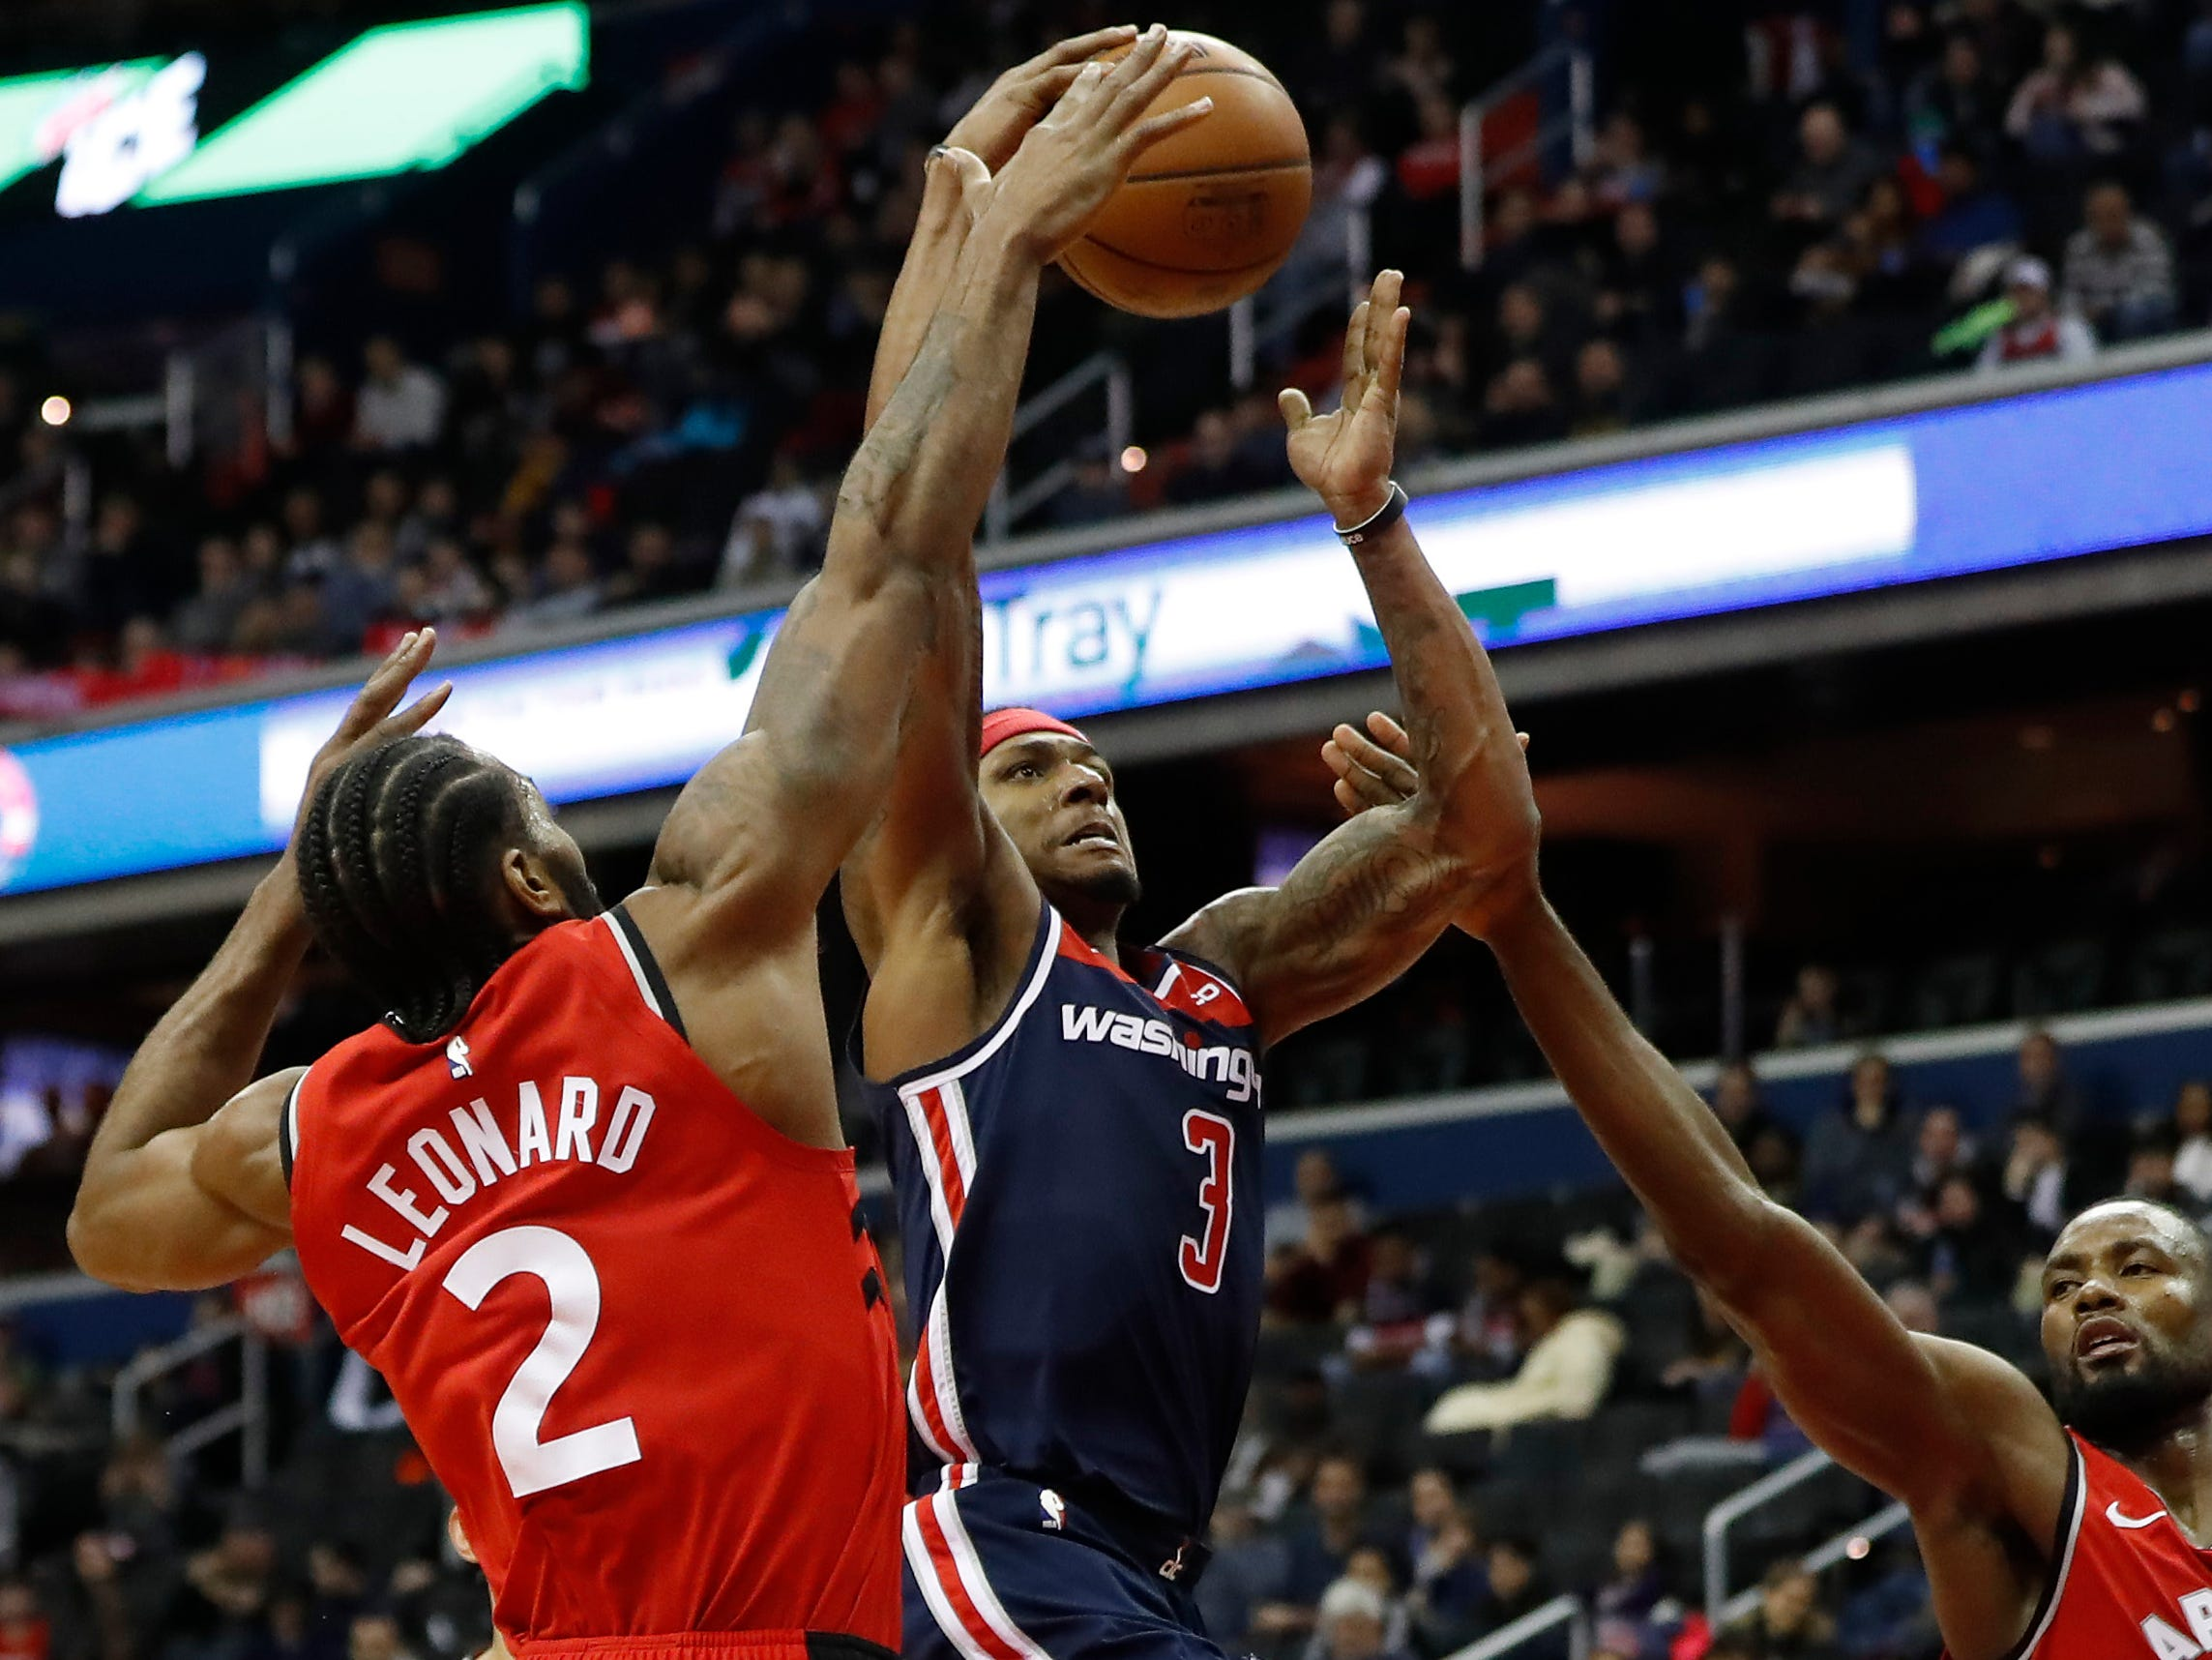 53. Bradley Beal, Wizards (Jan. 13): 43 points, 15 assists, 10 rebounds in 140-138 loss to Raptors (second of season).